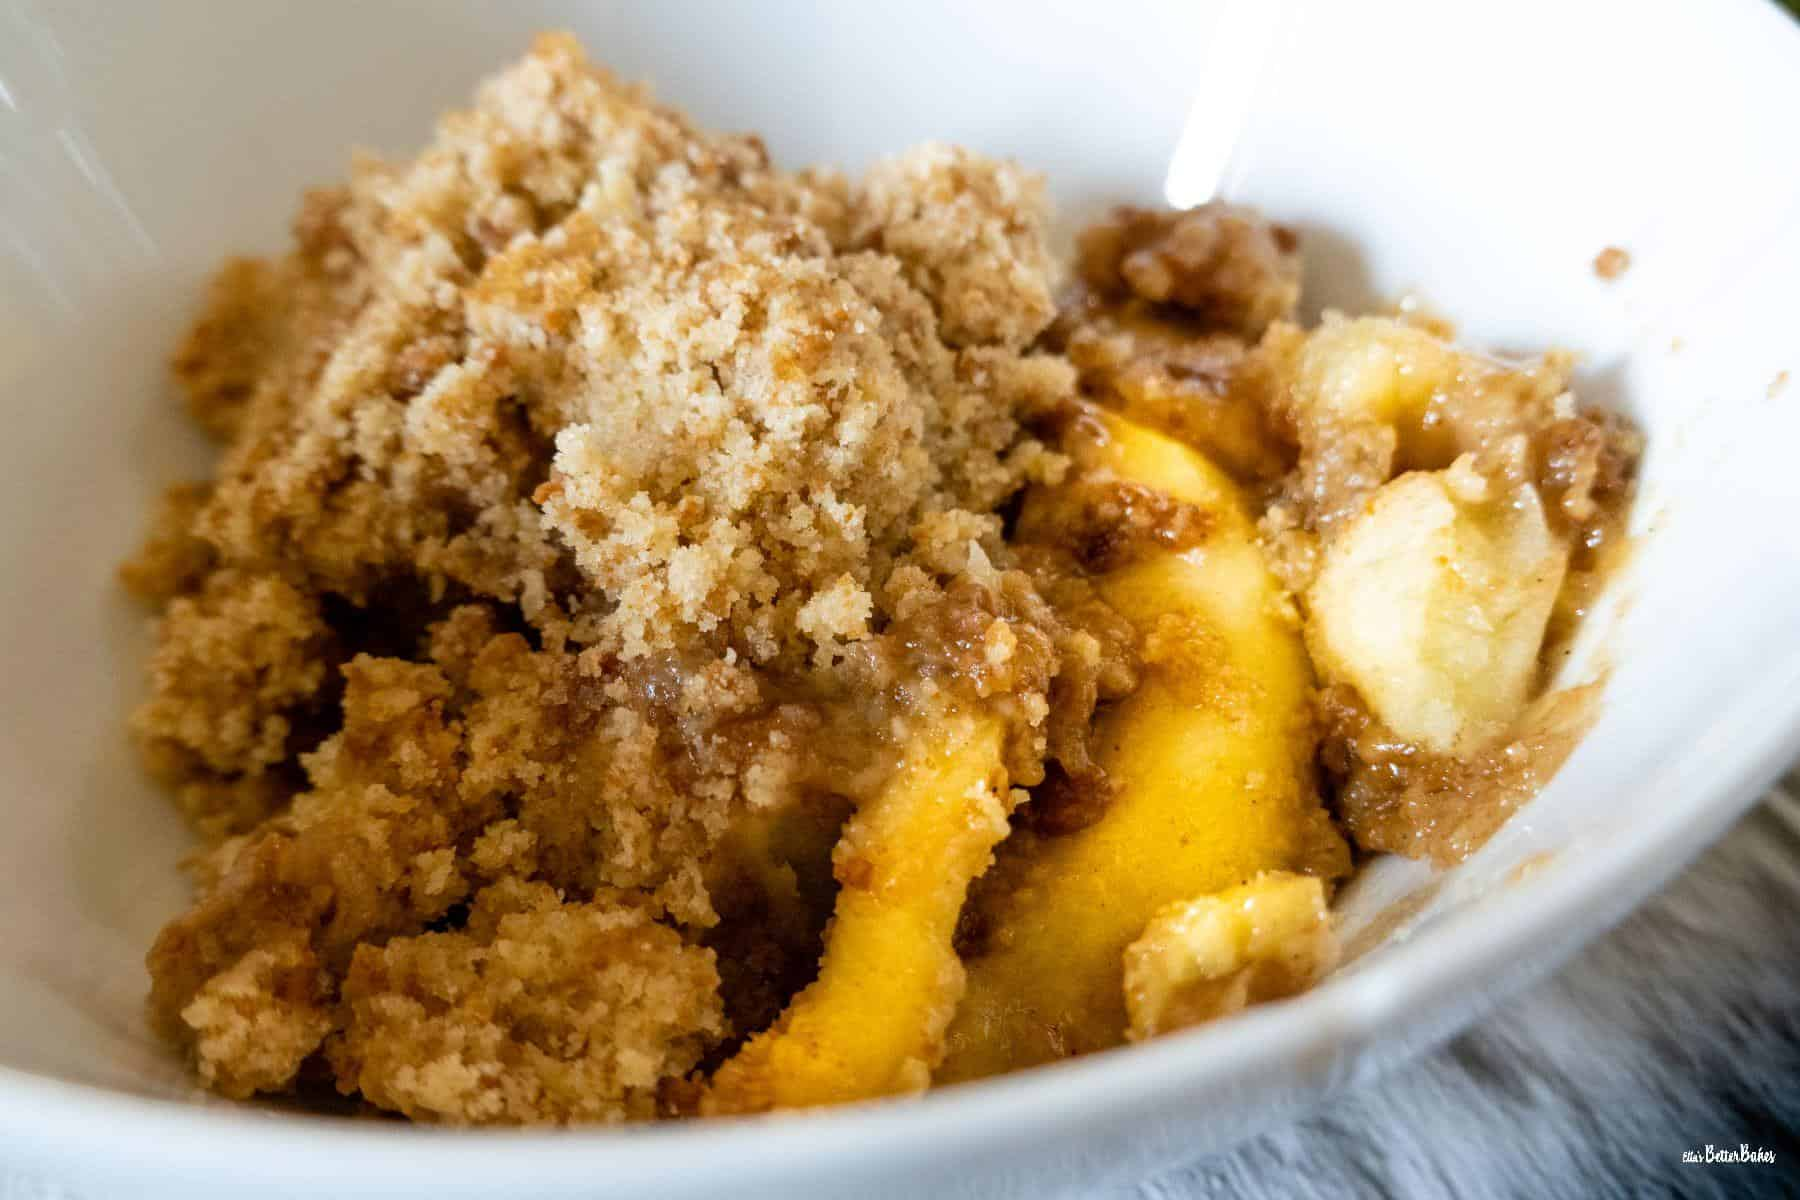 close up of a dish of crumble